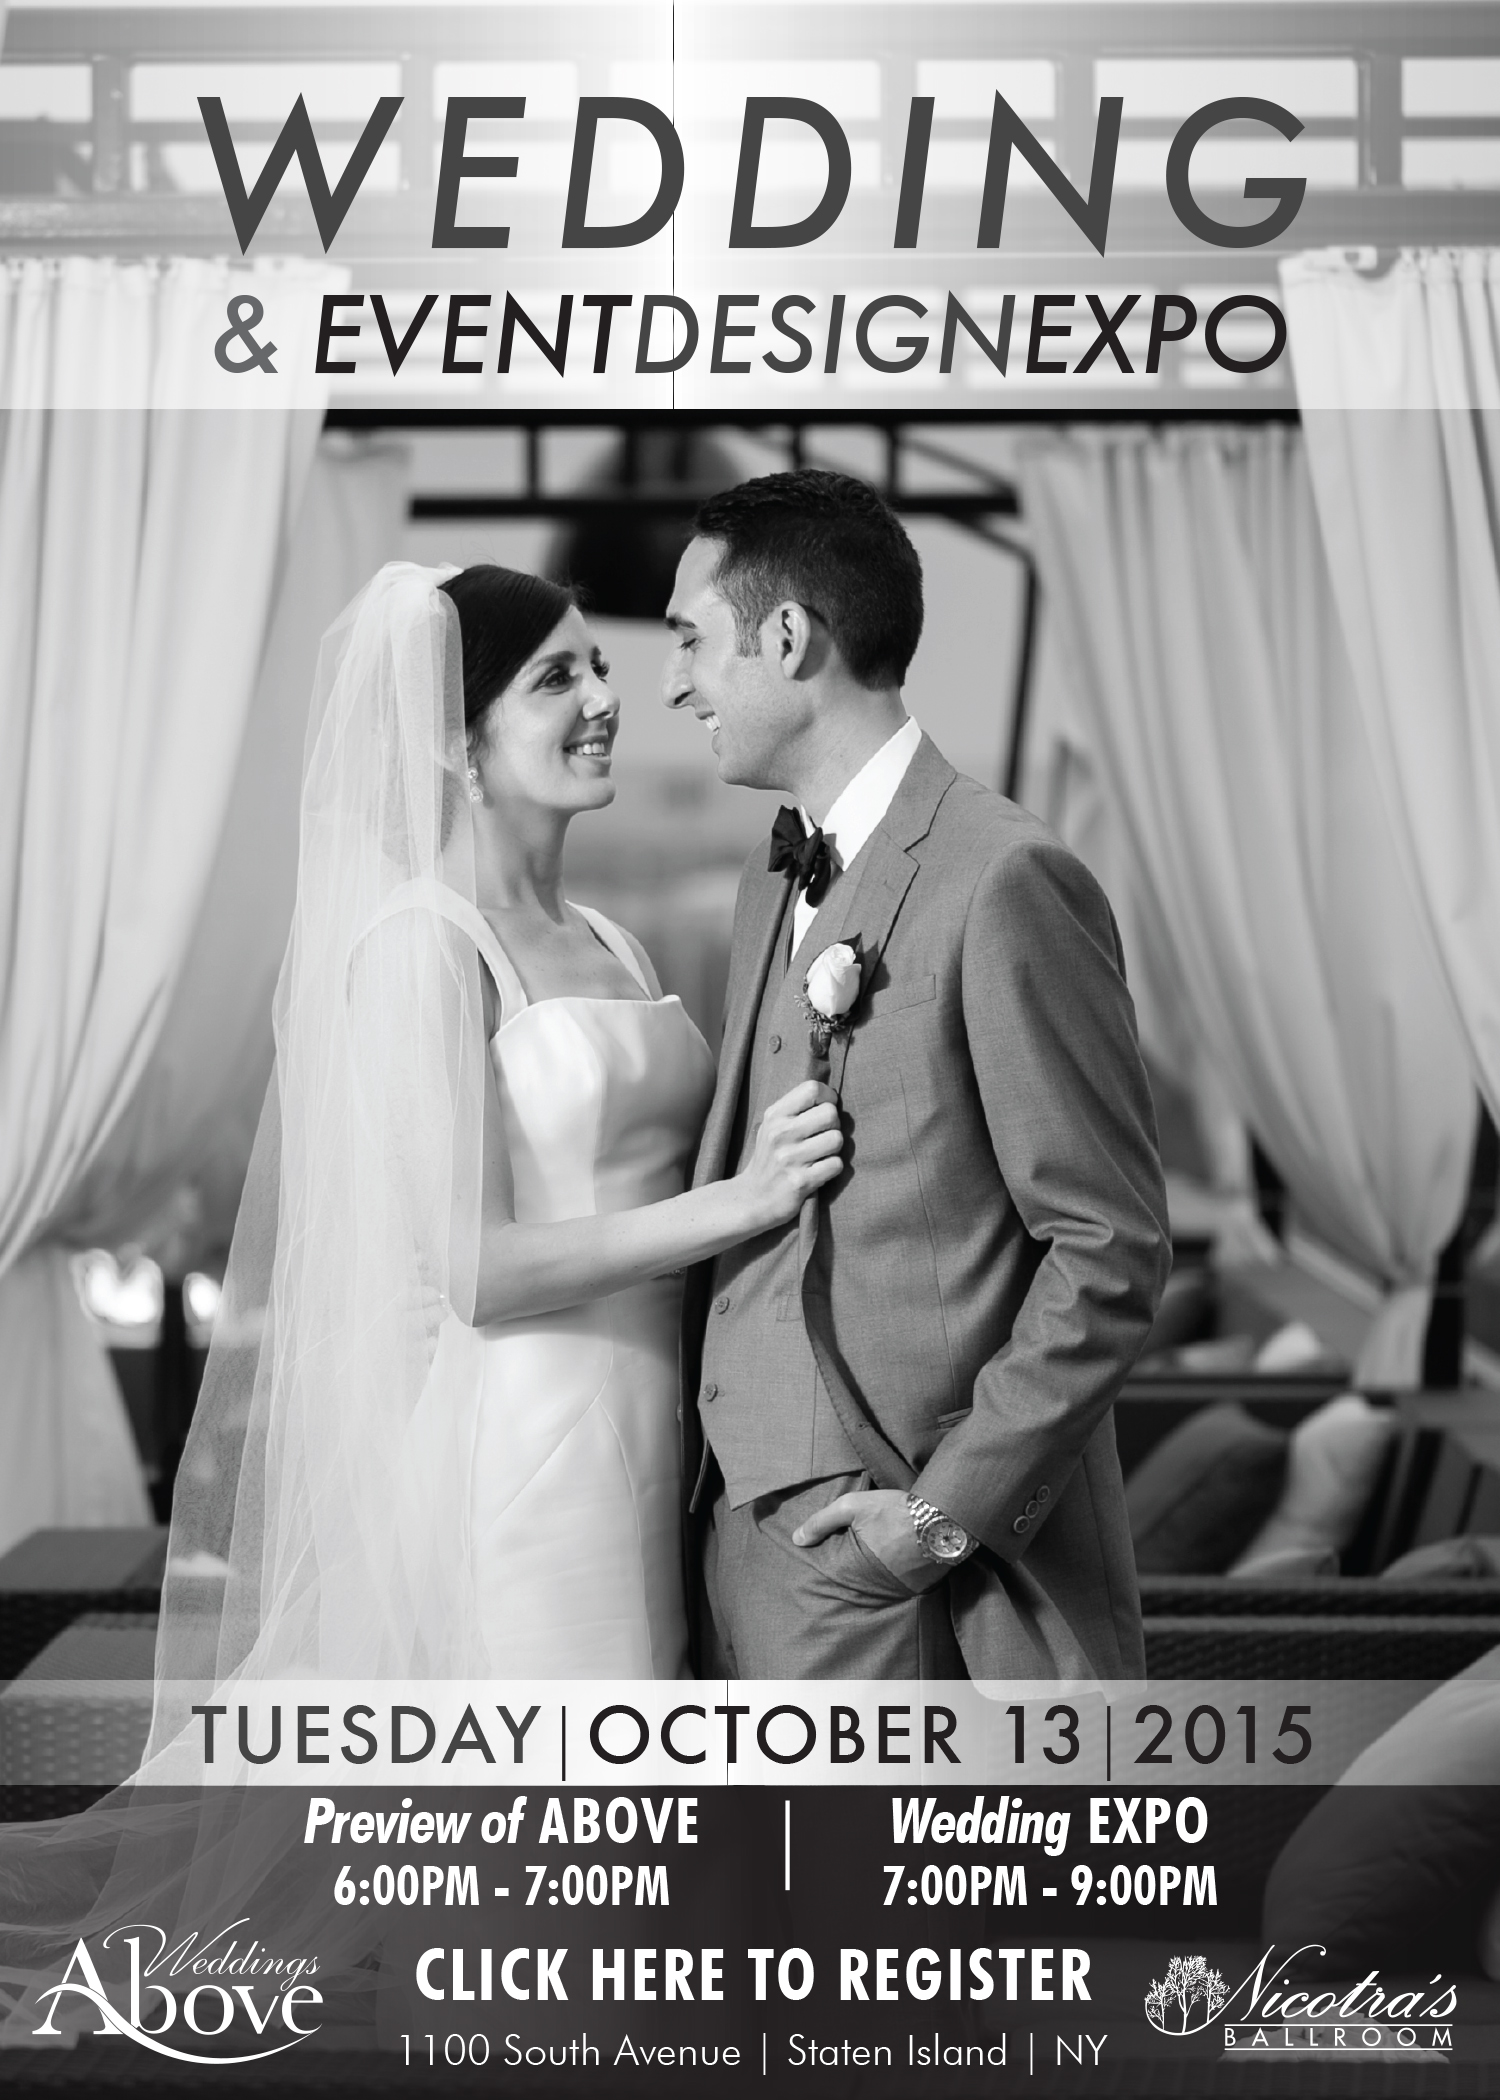 Wedding and events design expo October 13, 2015